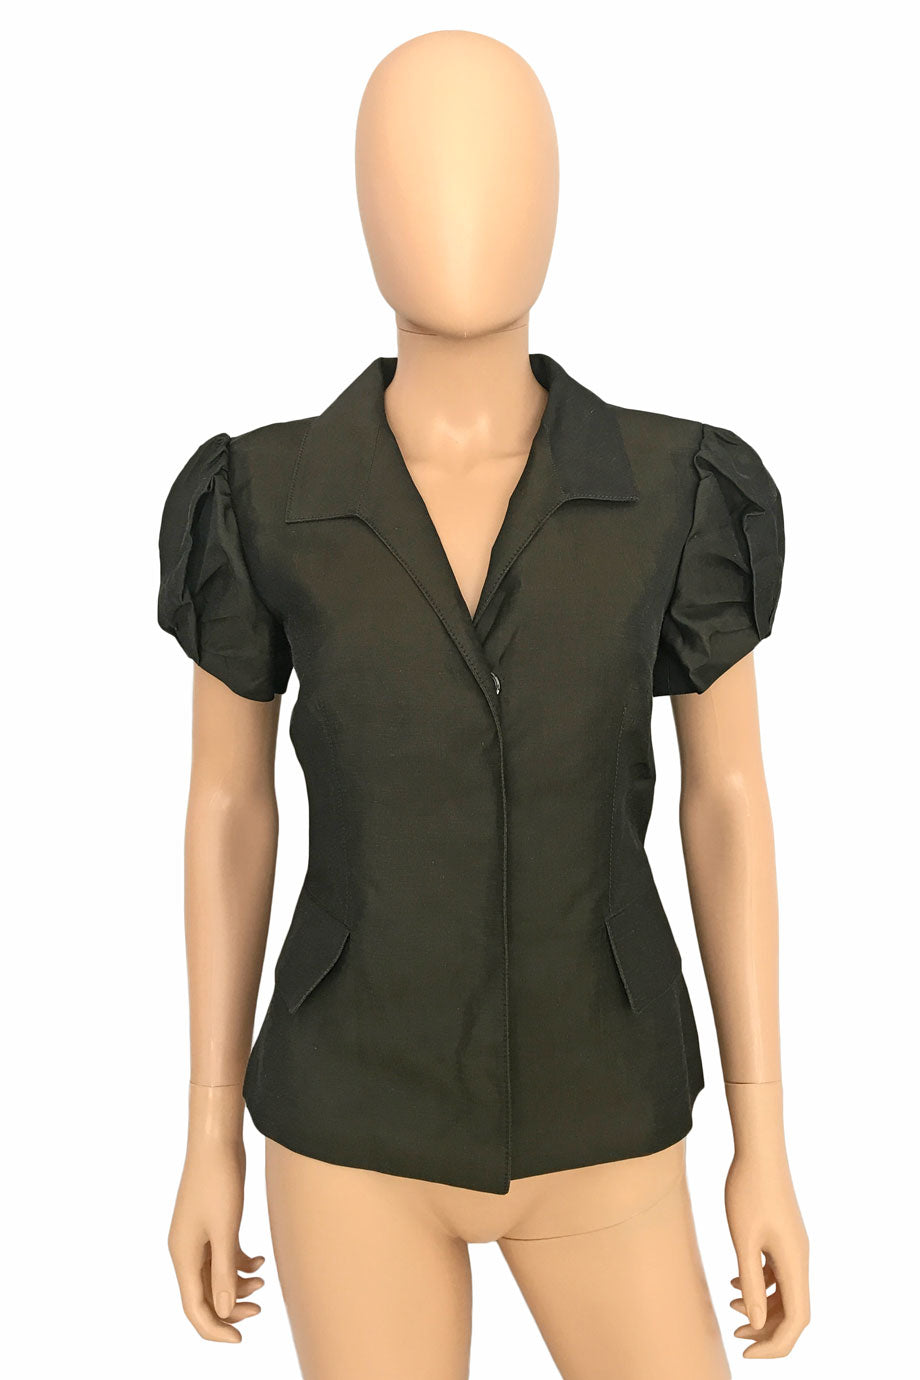 Oscar de la Renta Brown Short Sleeve Shirt-Jacket / Sz 6-Style Therapy